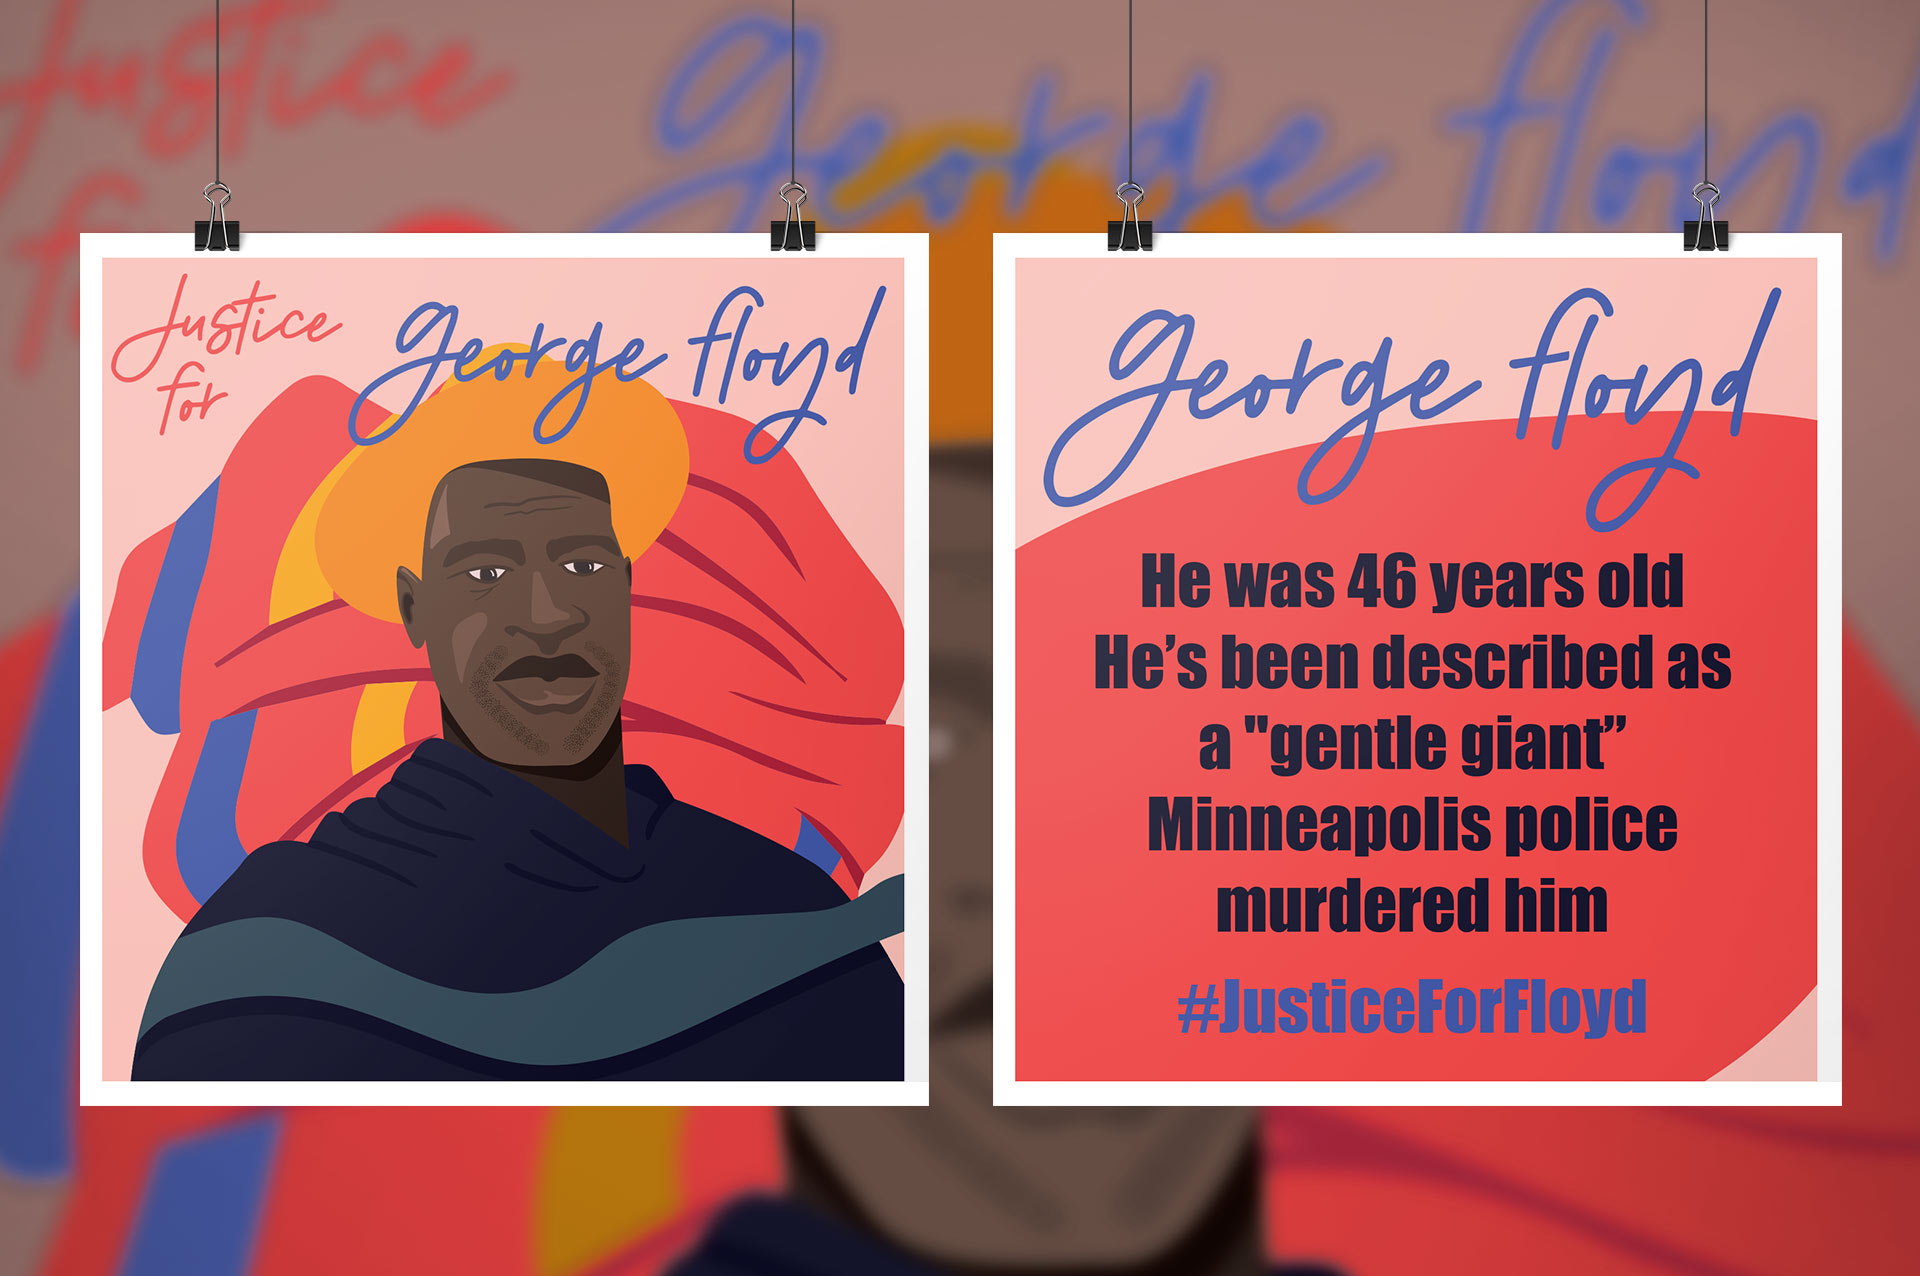 """George Floyd mockup poster. Image depicts a portrait of George Floyd with a warm background. The back of the poster reads """"He was 46 years old He's been described as a """"gentle giant"""" Minneapolis police murdered him."""""""